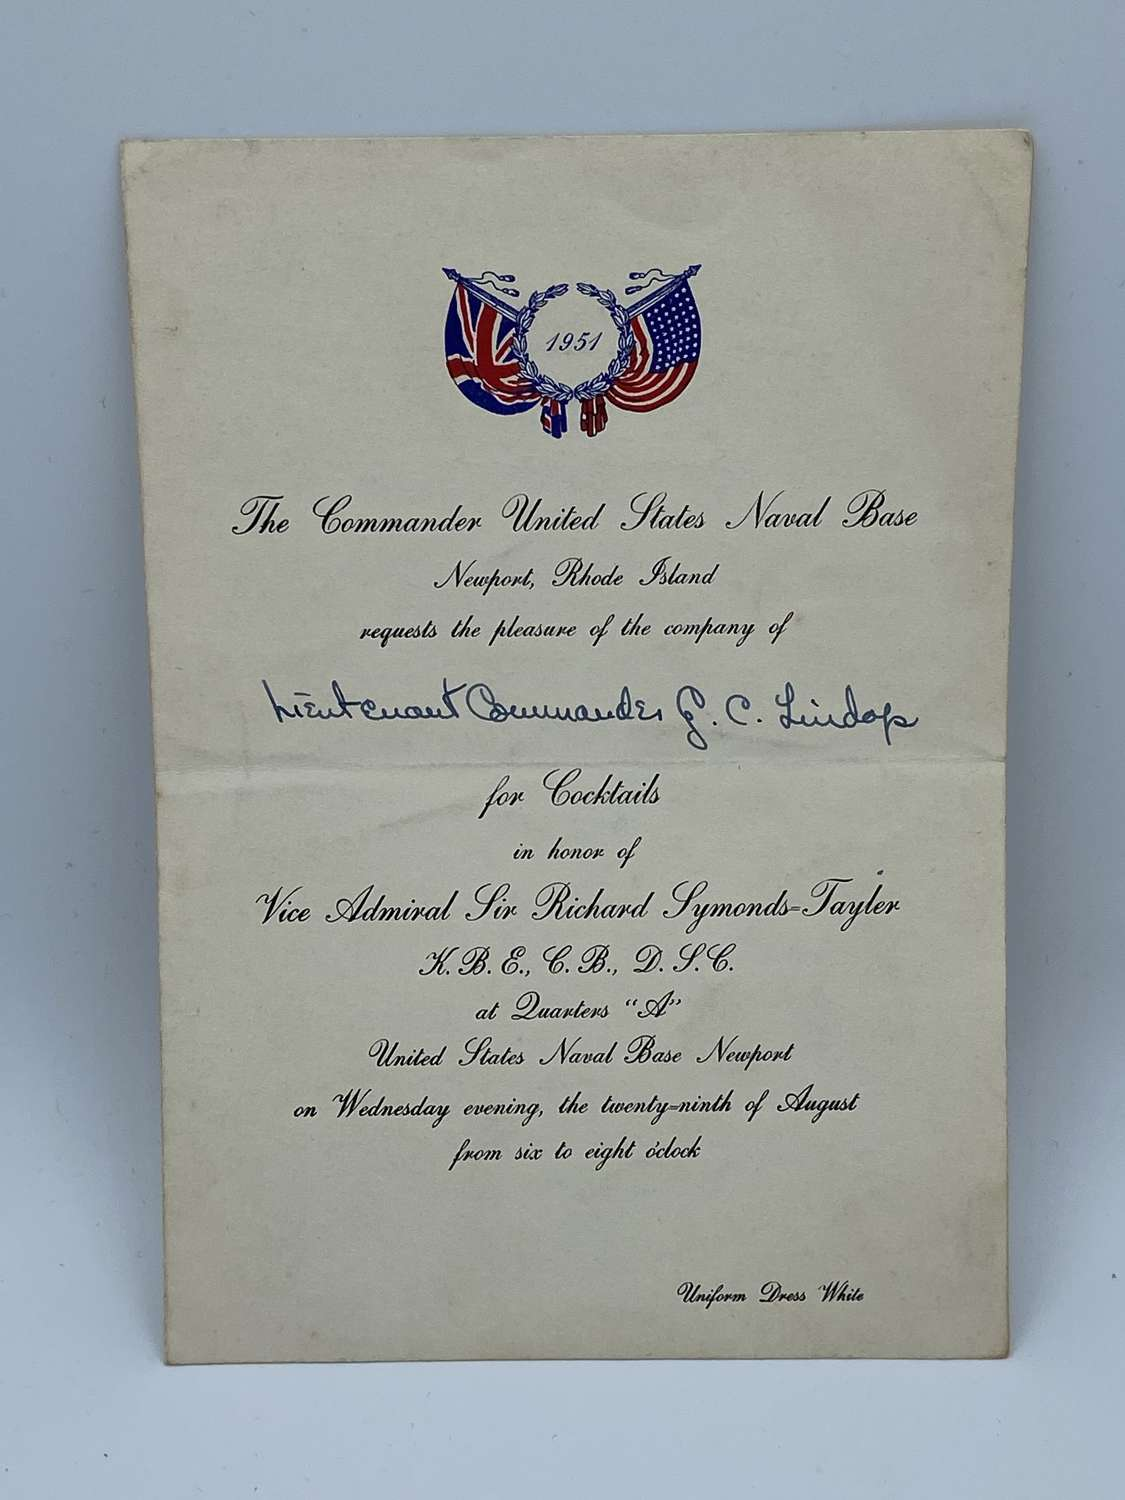 1951 Commander Of The United States Navy Base Invitation 4 Cocktails